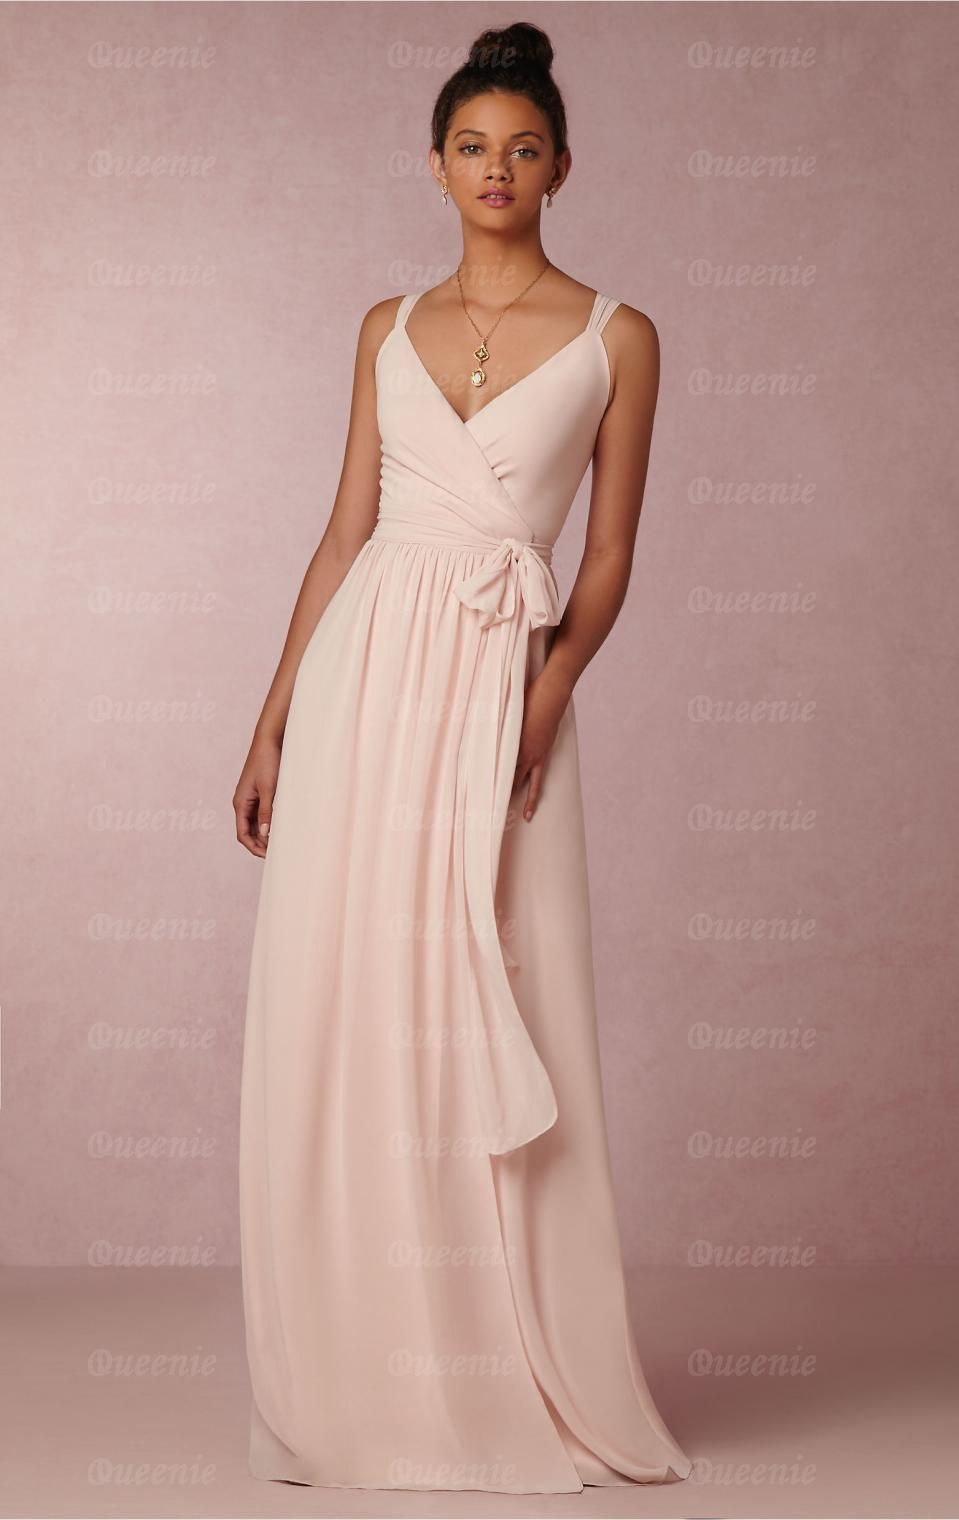 Designer light pink long bridesmaid dress bnnde0000 bridesmaid uk designer light pink long bridesmaid dress bnnde0000 bridesmaid uk ombrellifo Image collections